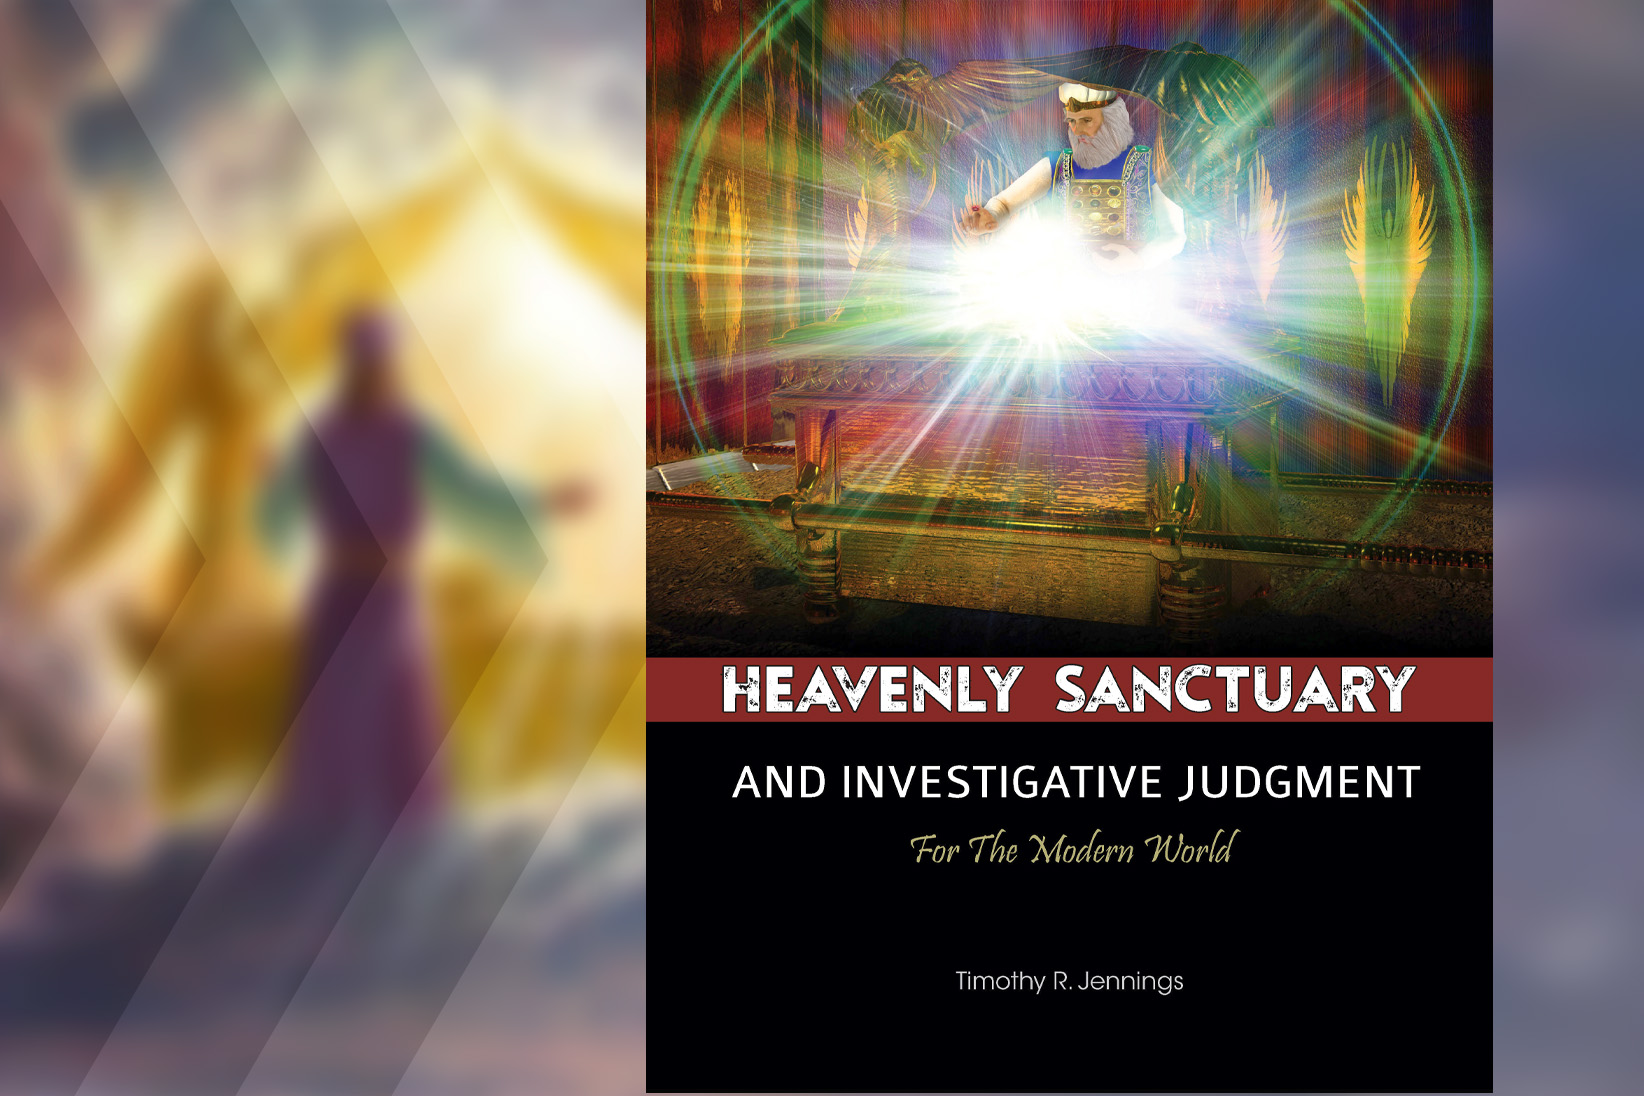 Heavenly Sanctuary and Investigative Judgement